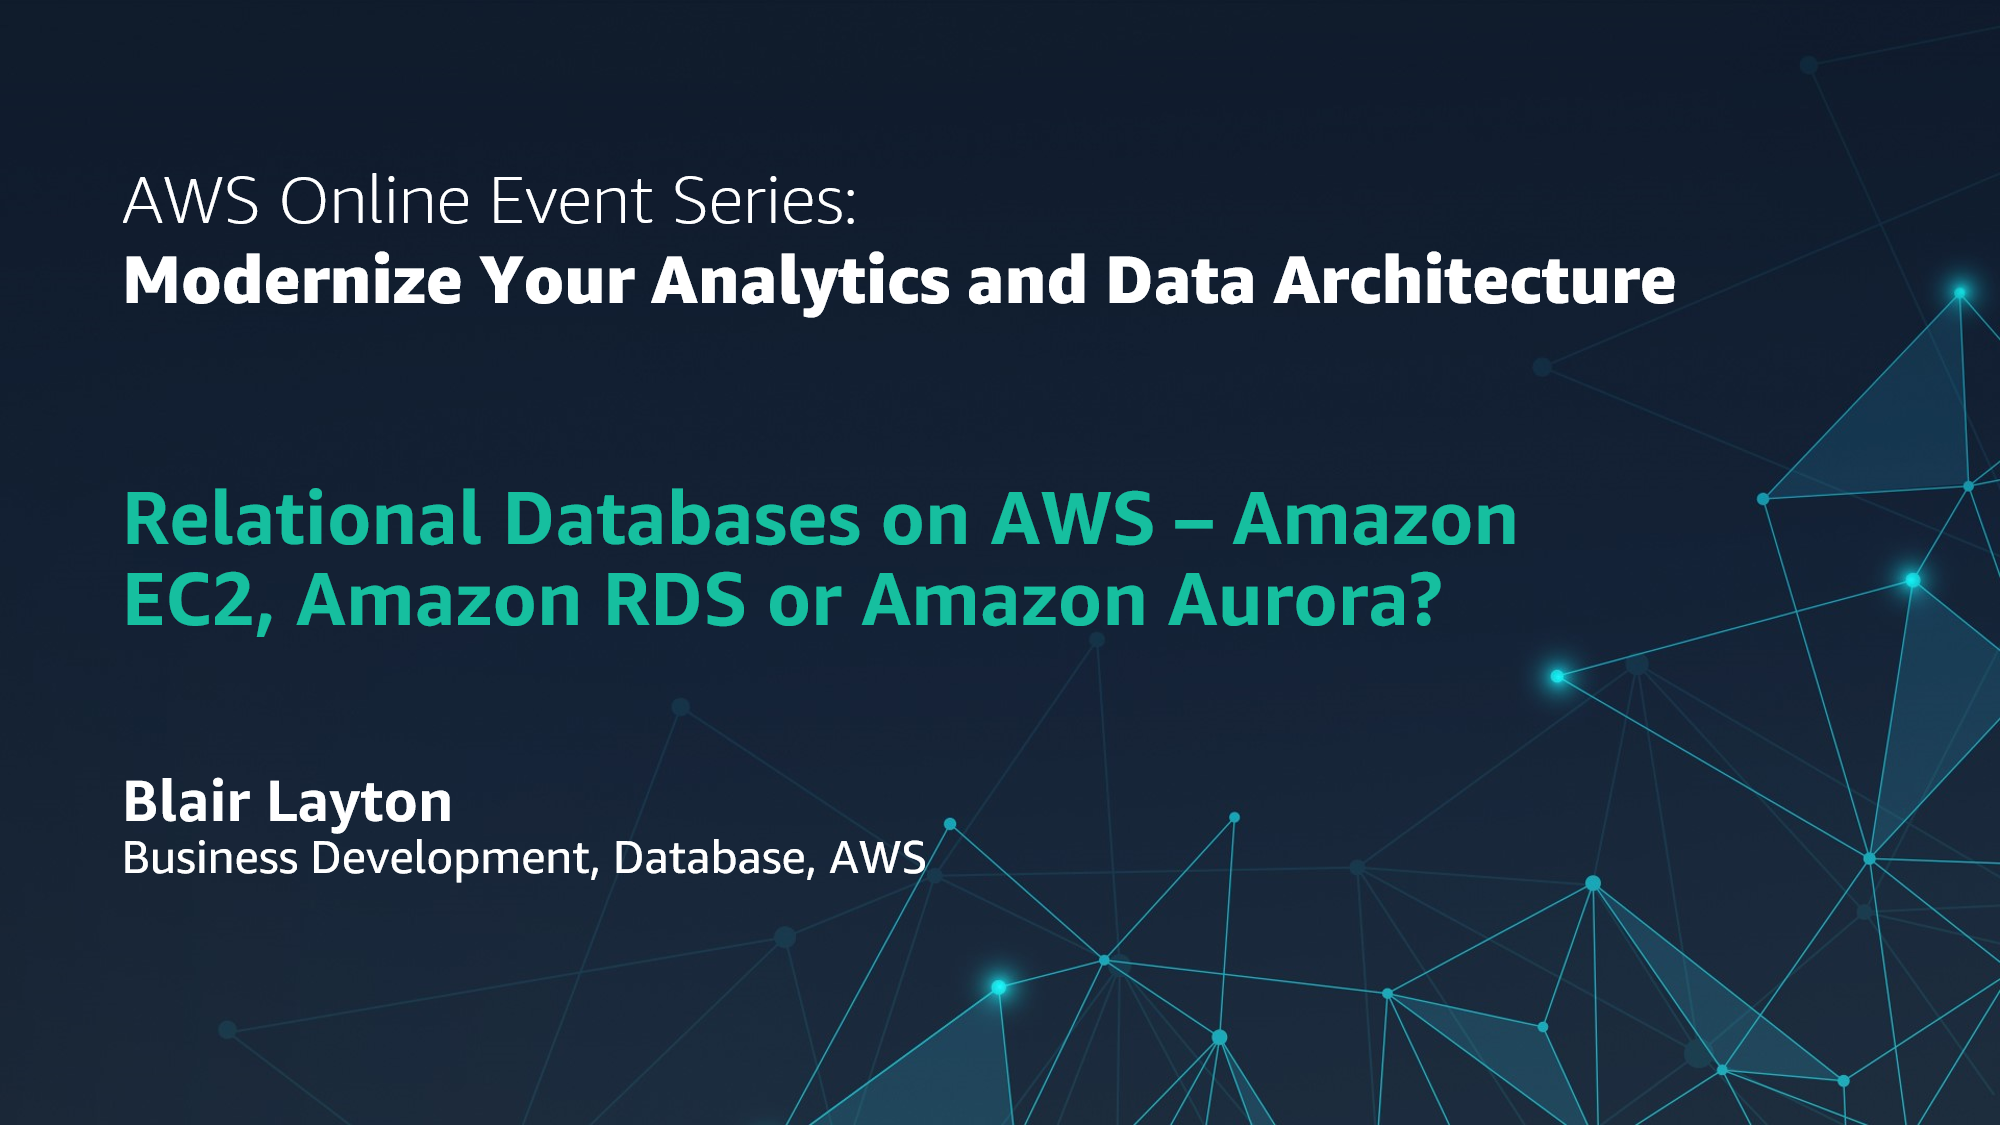 Relational databases on AWS - Amazon EC2, Amazon RDS, or Amazon Aurora